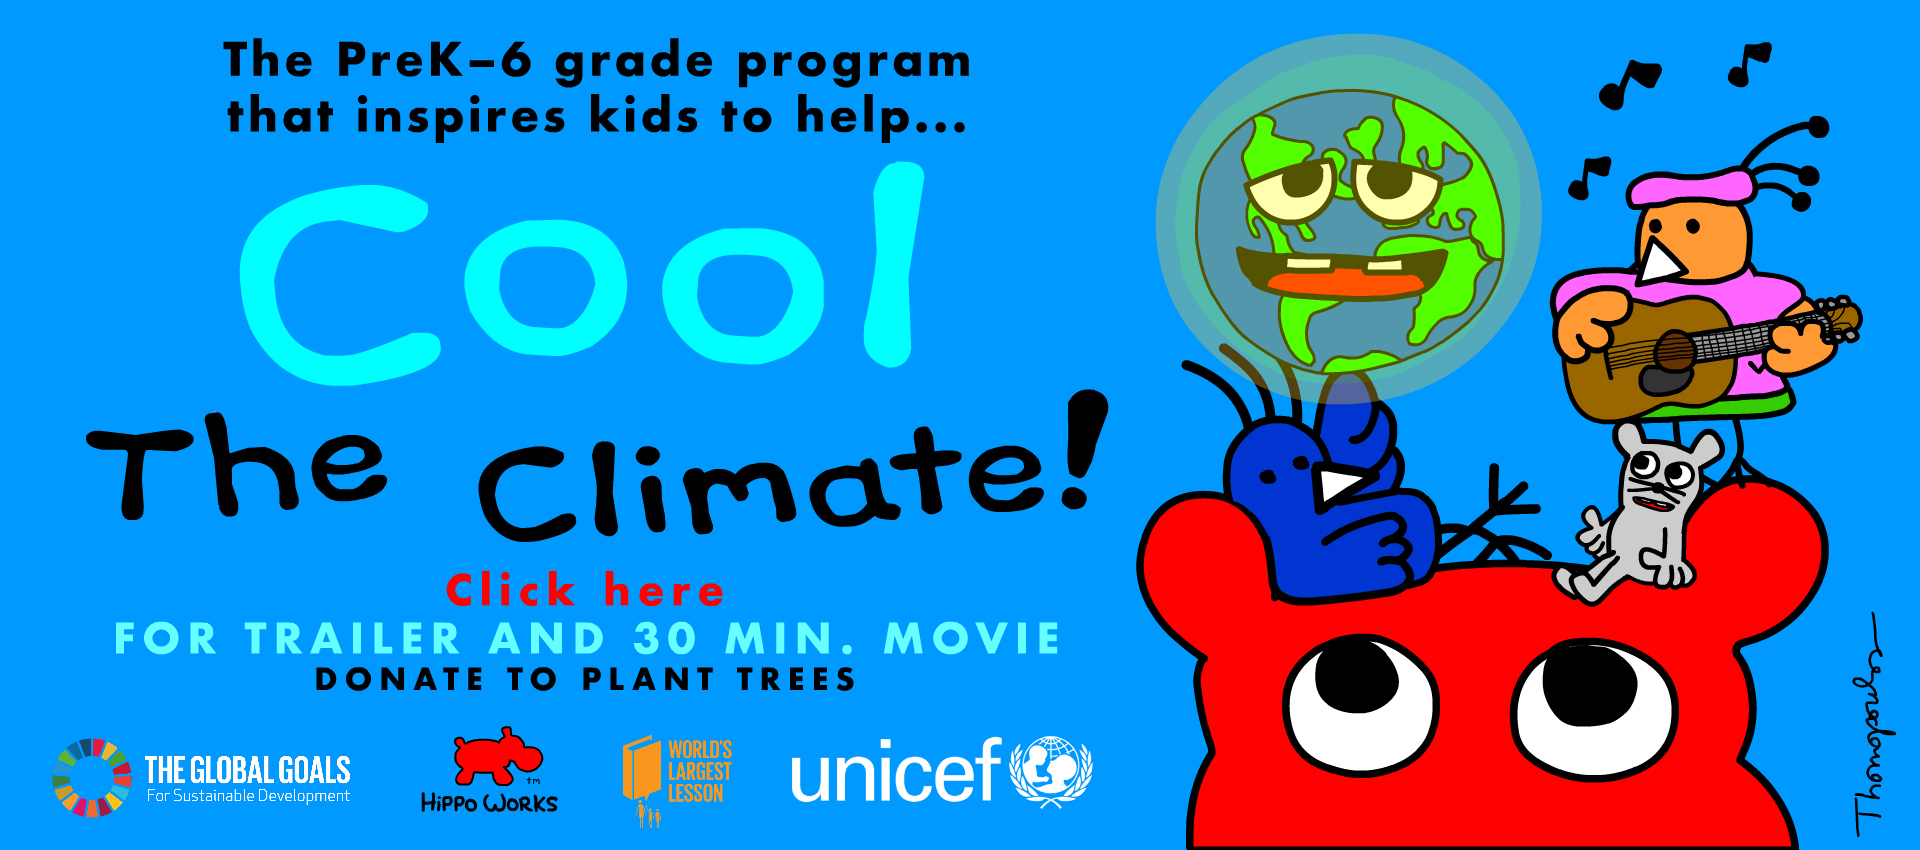 global-warming-facts-for-kids